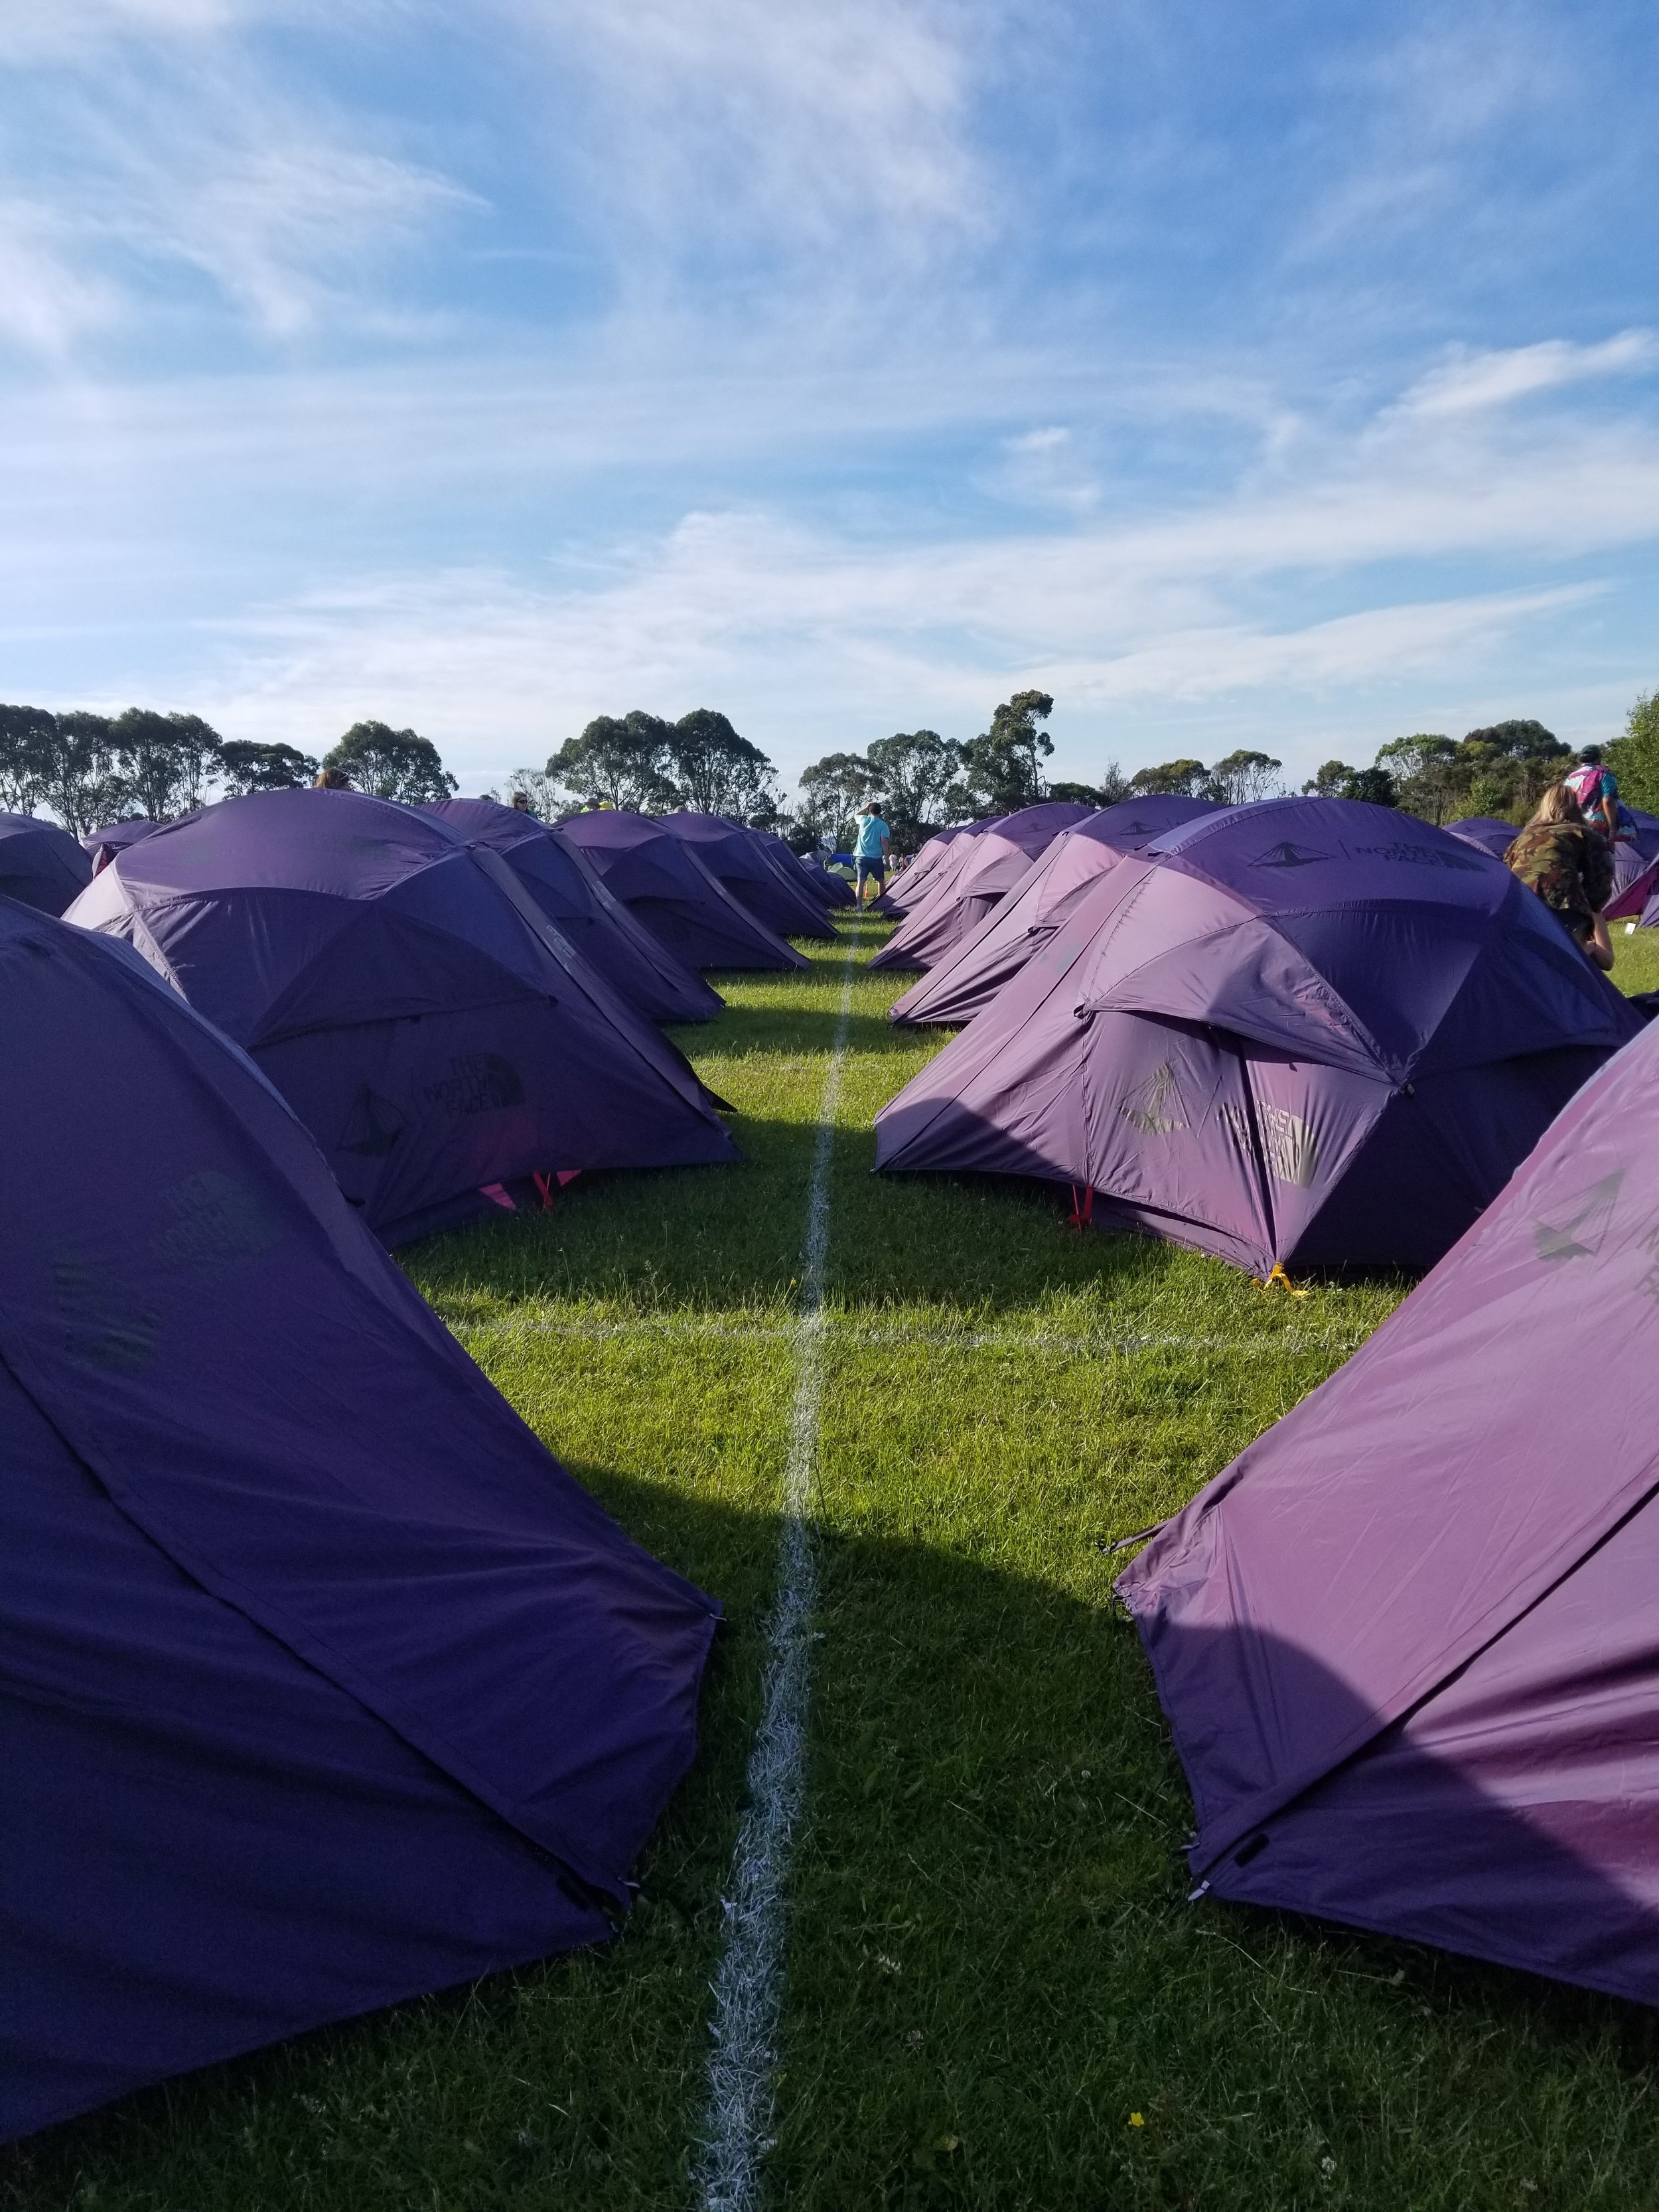 The lines of tents that we were accommodating.